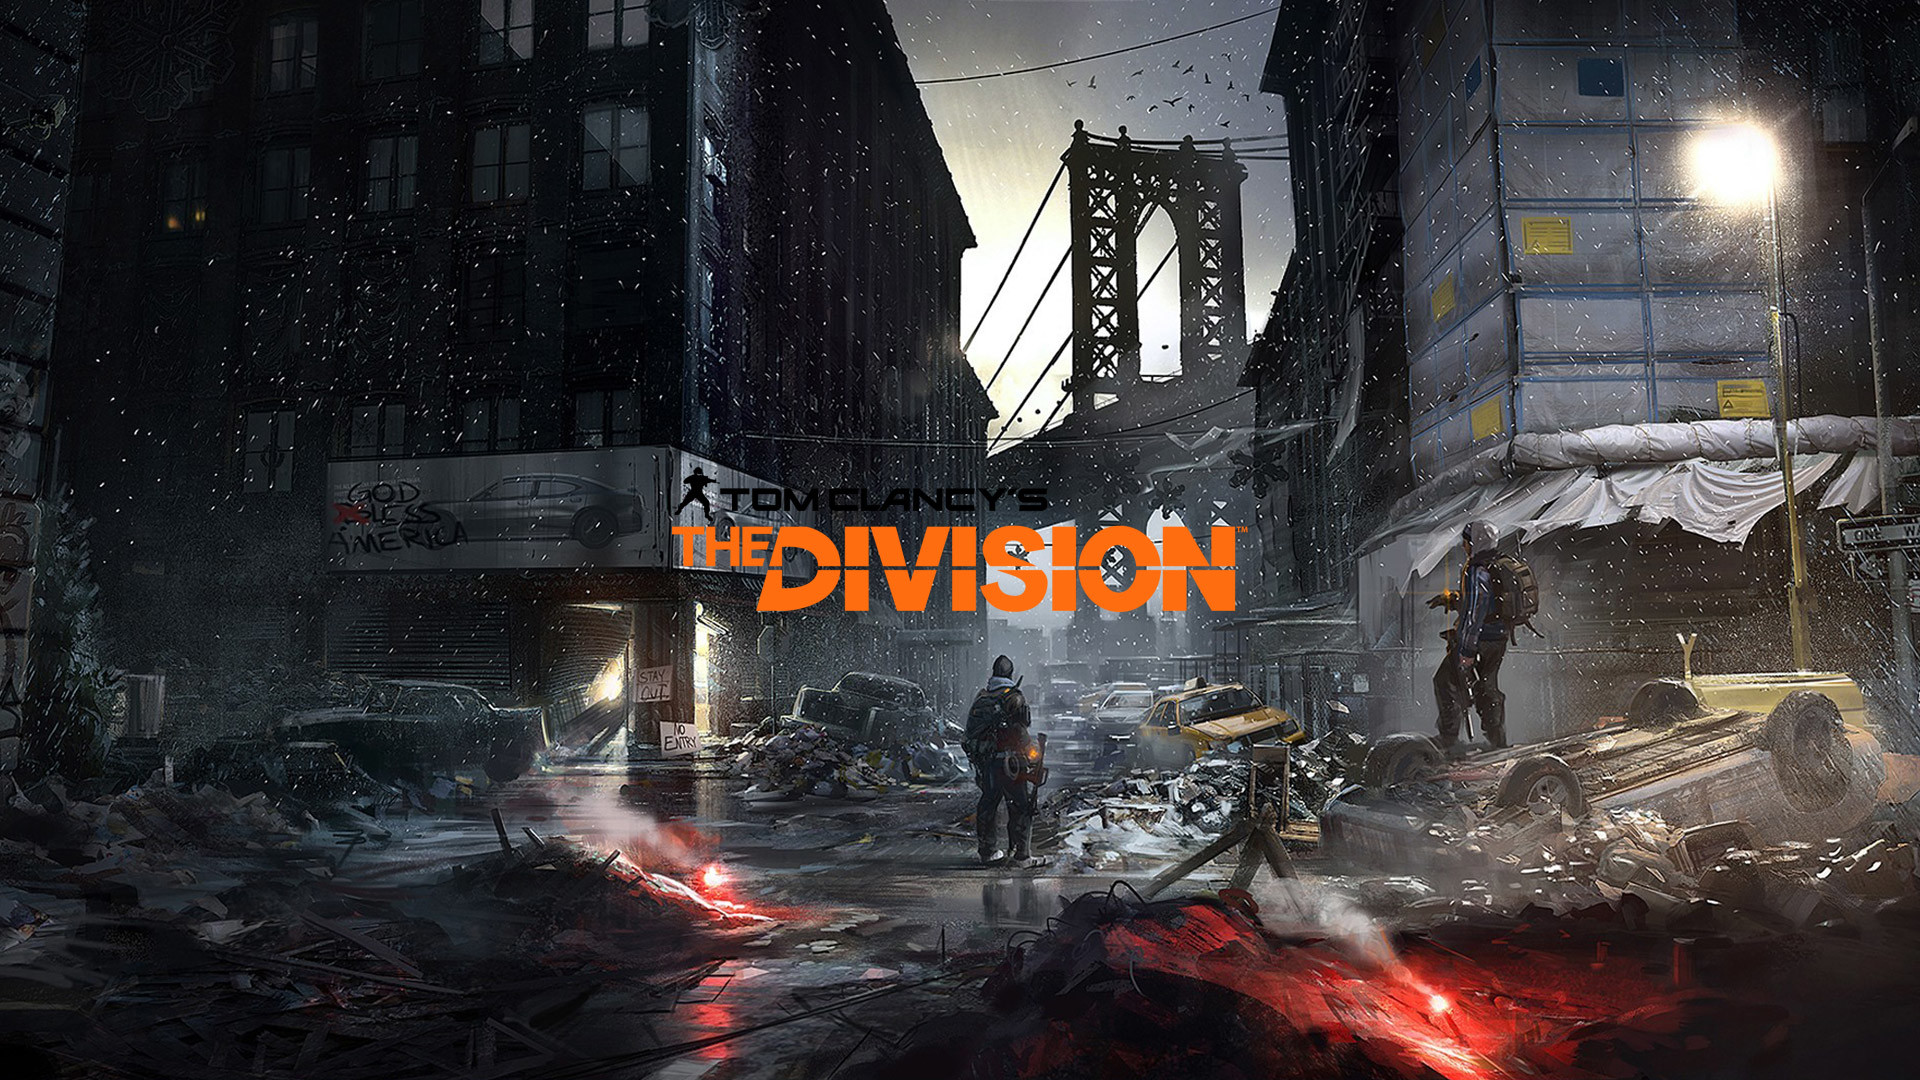 The Division Wallpaper 1080p